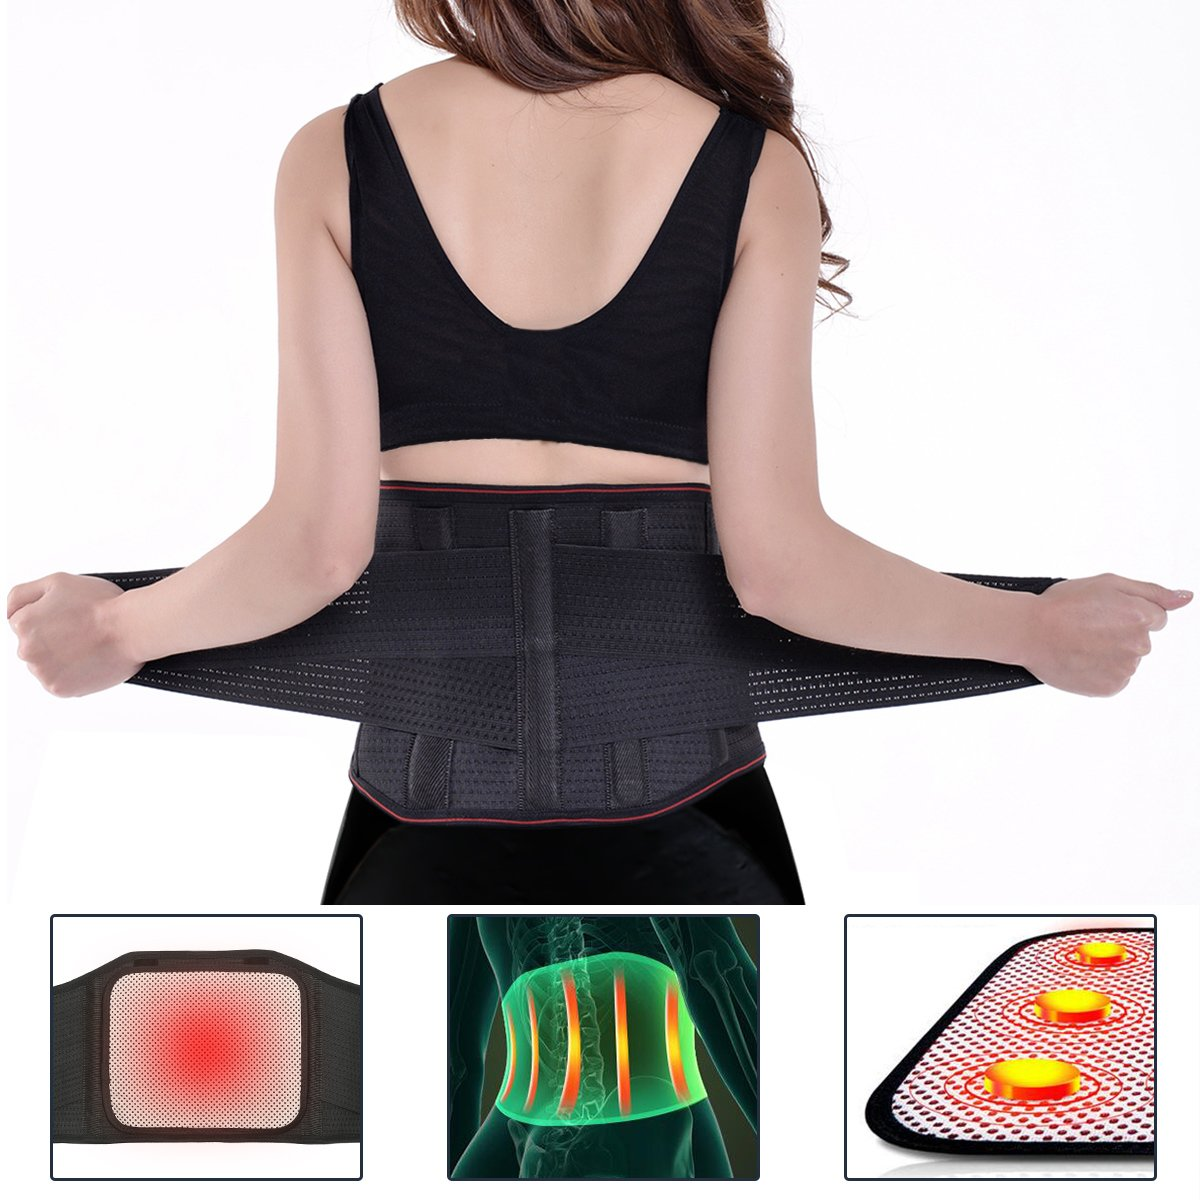 Looking for the perfect brace to sooth your aching back? This back support is great pain relief as it soothes and massages lower with its 13 Best Back Brace Women 2018 | apexhealthandcare.com